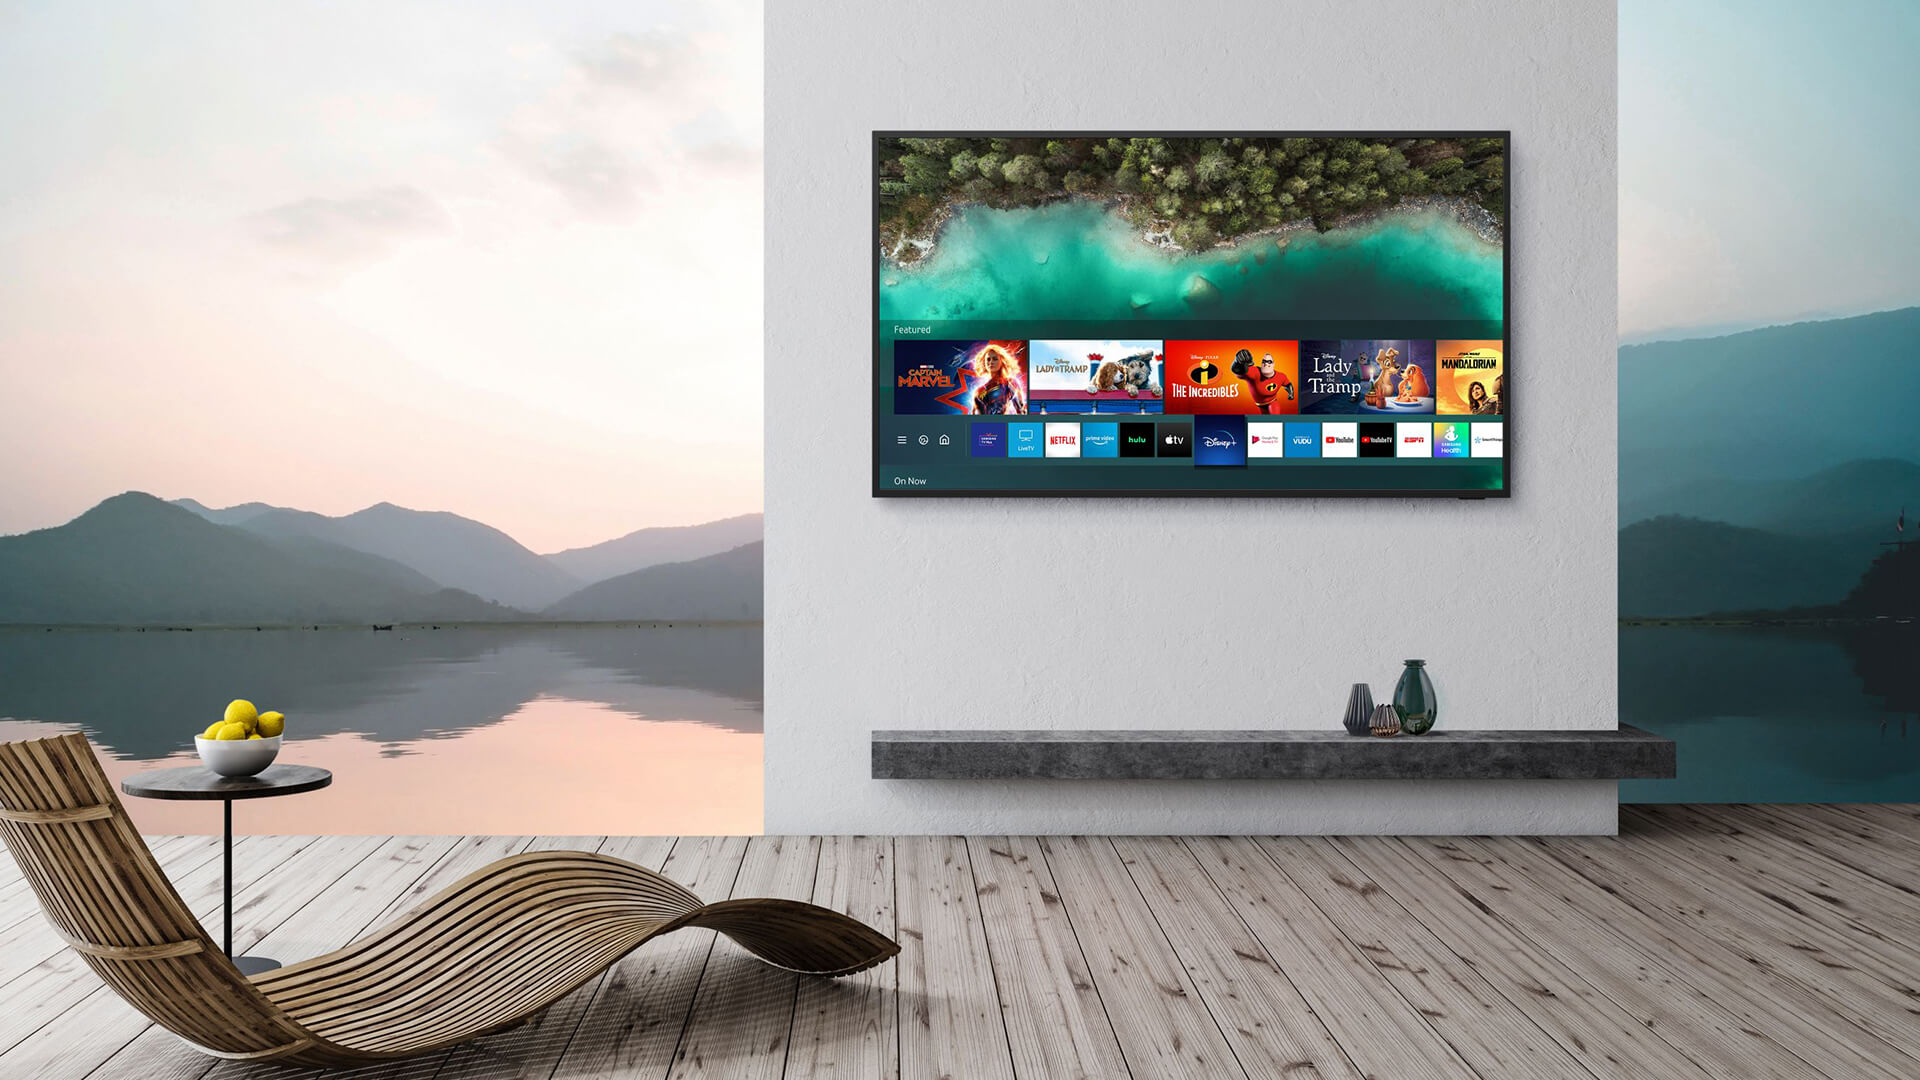 Best 4K HDR Smart TVs in India Under Rs 50,000